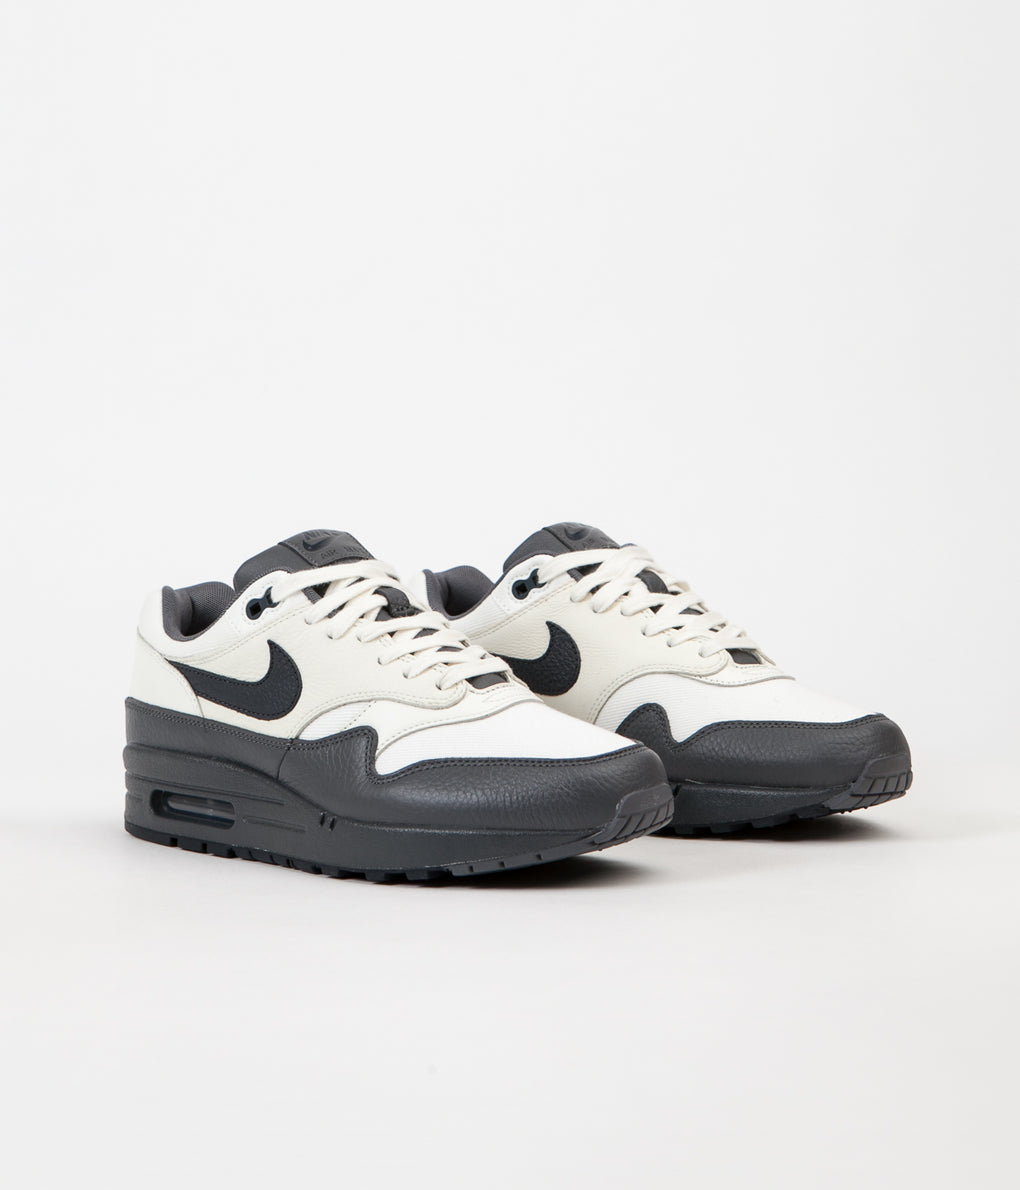 Nike Air Max 1 Premium Shoes - Sail / Dark Obsidian - Dark Grey